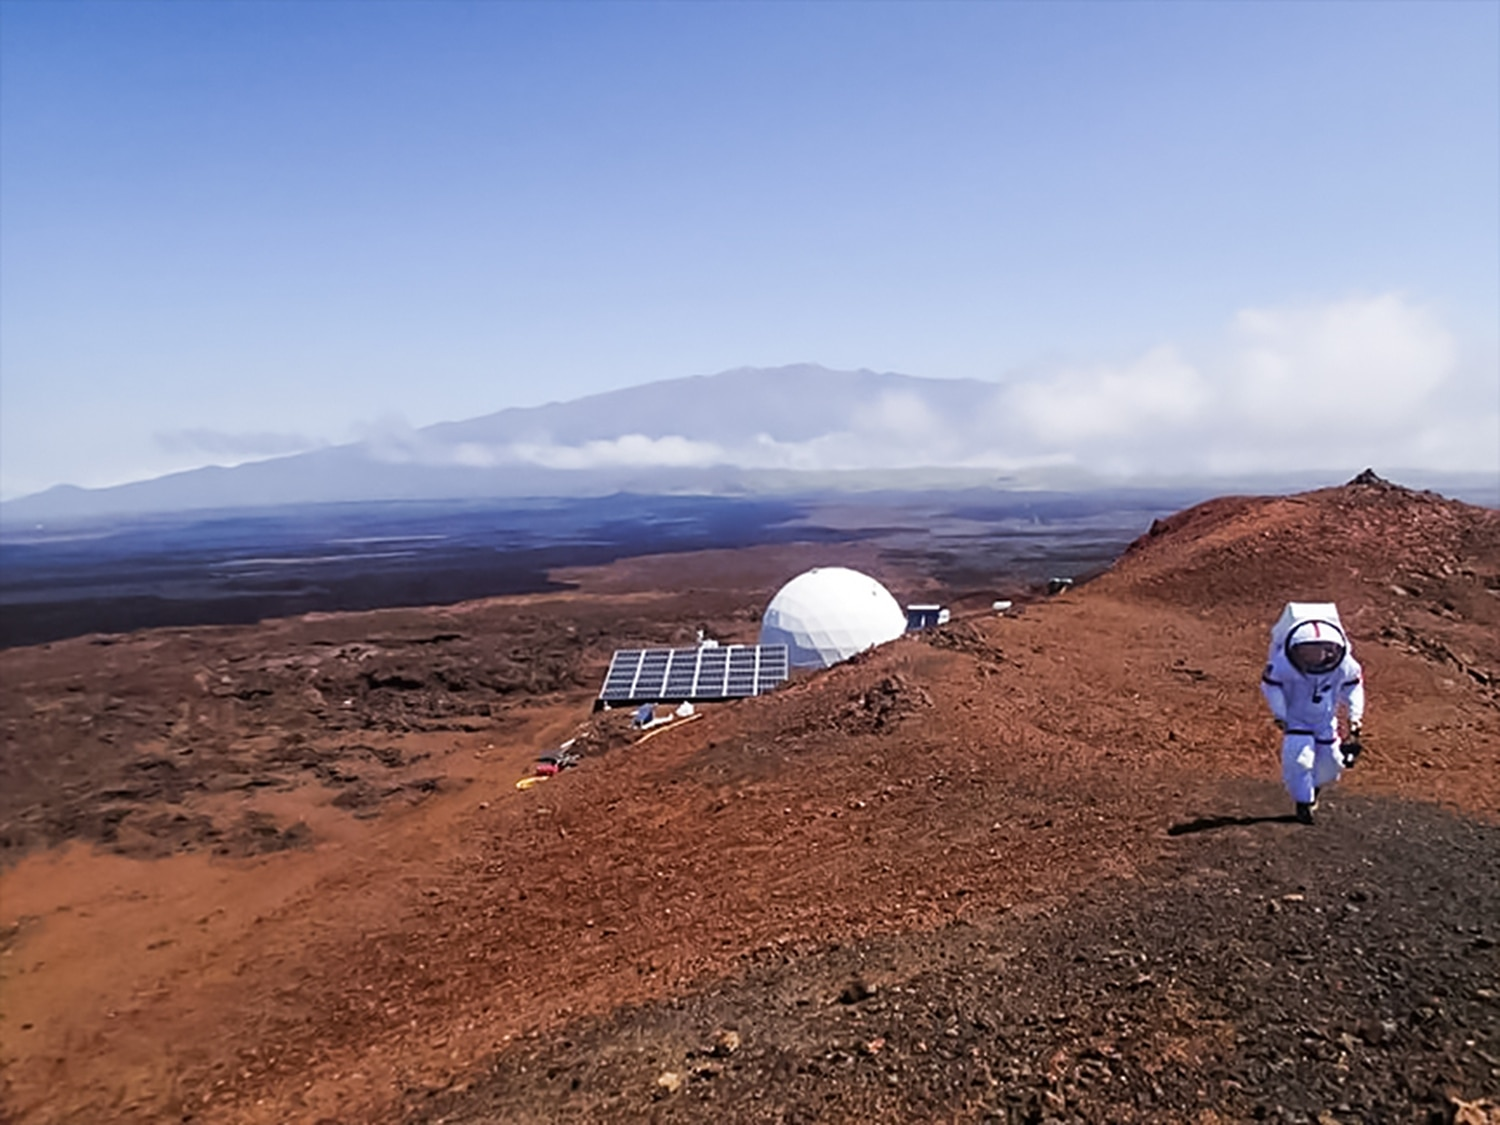 HI-SEAS is a Martian simulation on the slopes of the Mauna Loa volcano on the island of Hawaii.